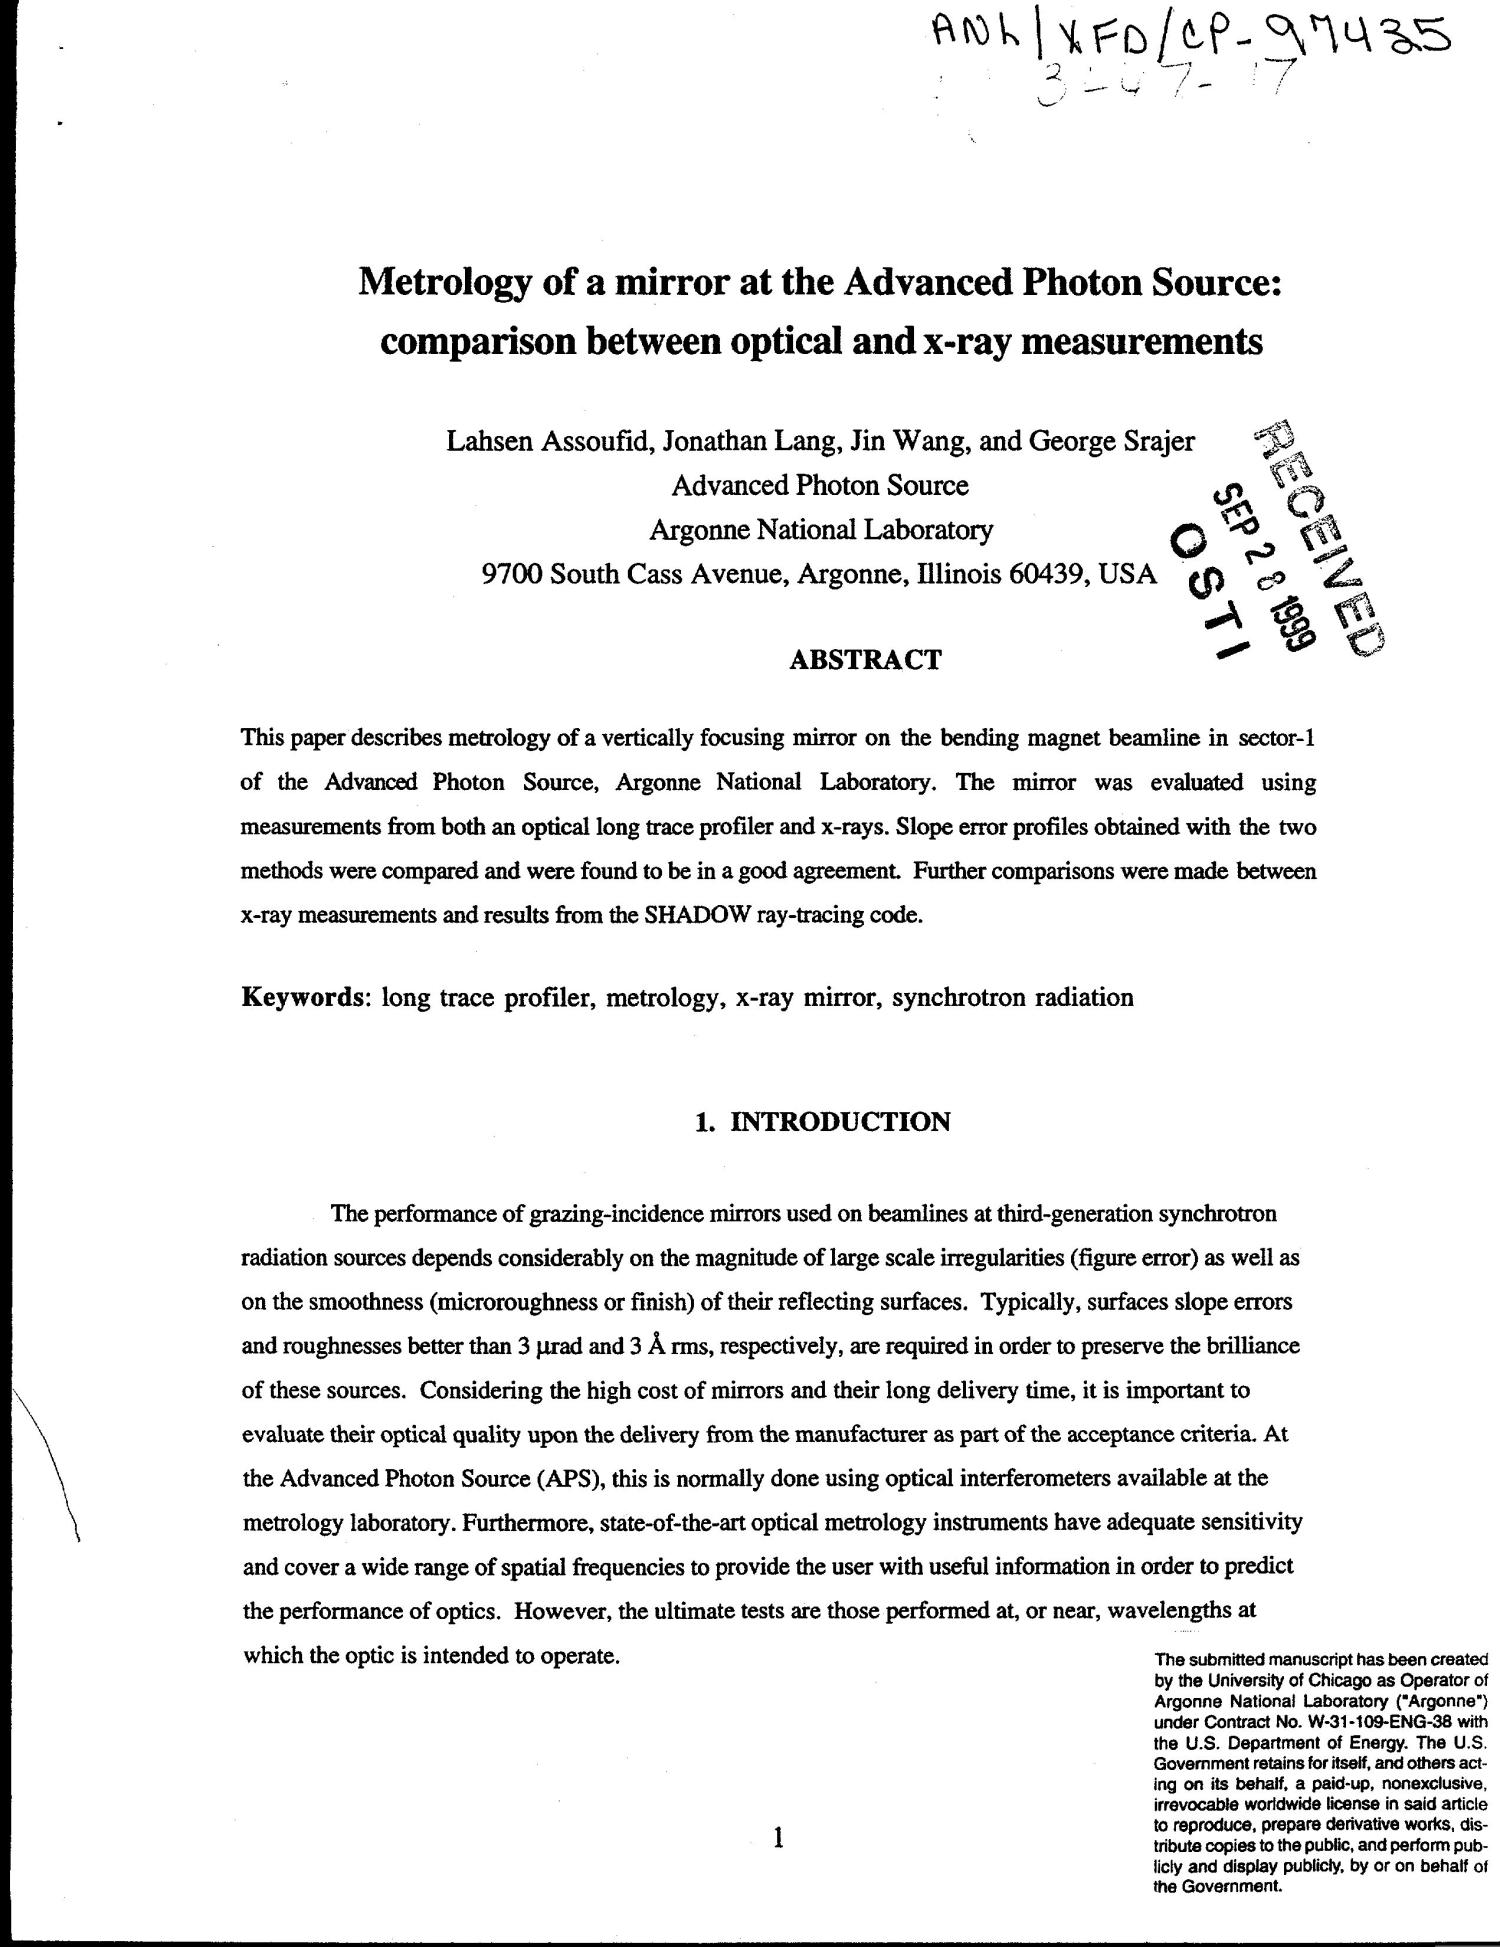 Metrology of a mirror at the Advanced Photon Source : comparison between optical and x-ray measurements.                                                                                                      [Sequence #]: 1 of 14